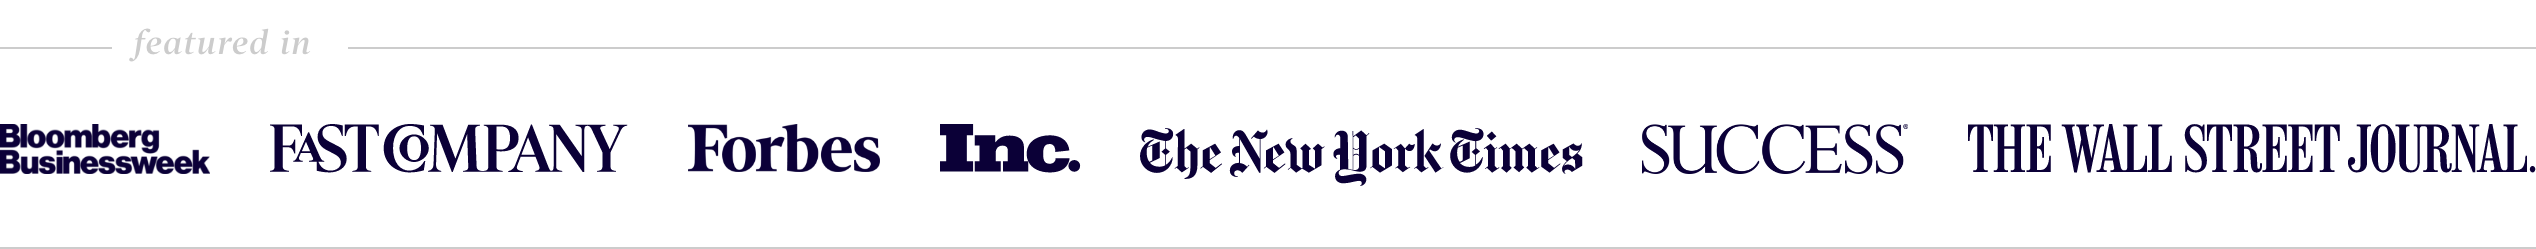 Featured in Forbes, New York Times, and more